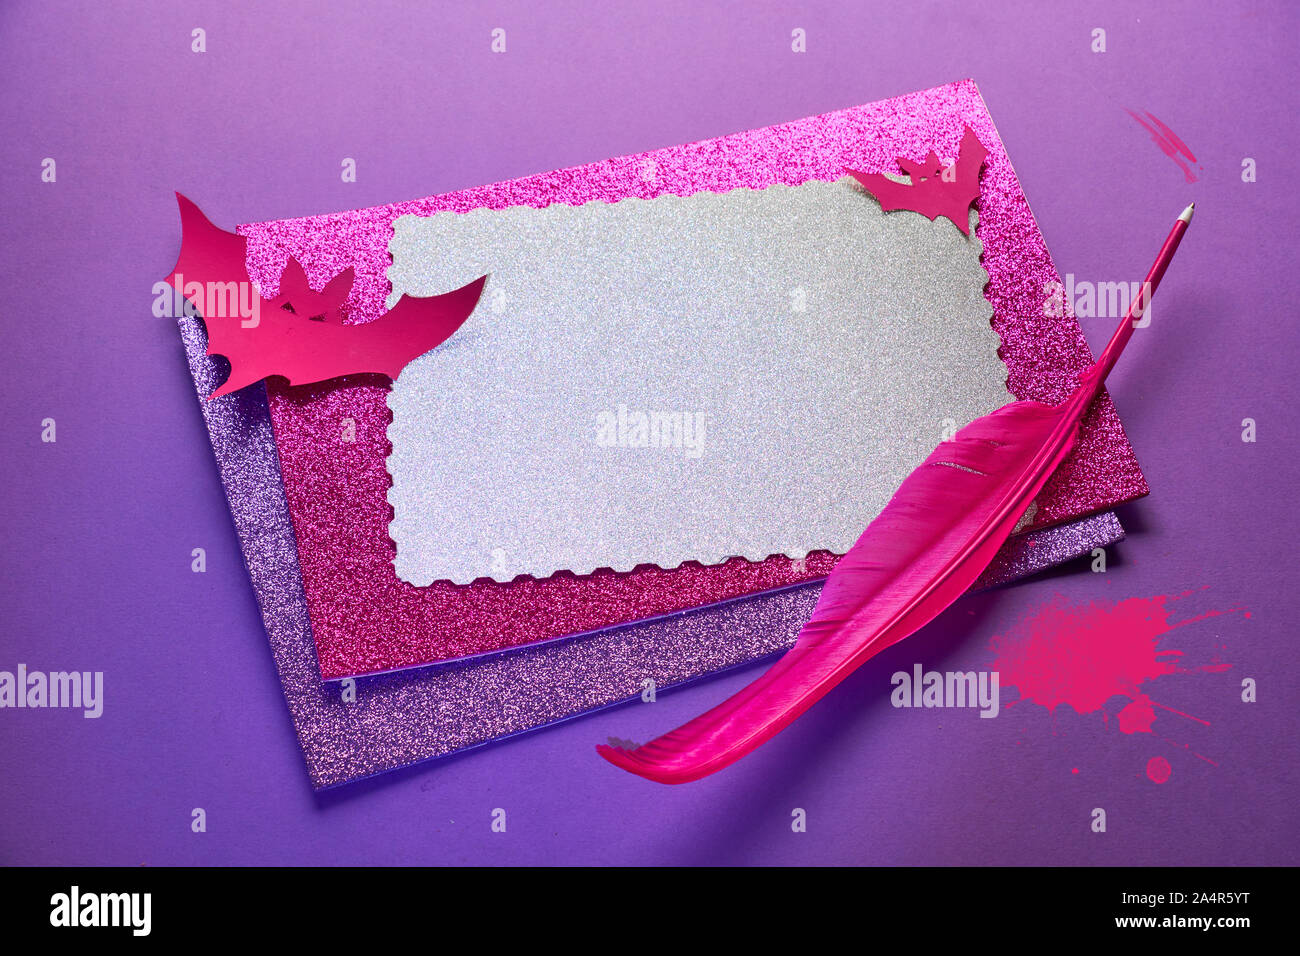 Creative Halloween background in glowing neon pink and purple with stack of glittering paper, quill and paper bats. Copy-space on the top card. Stock Photo